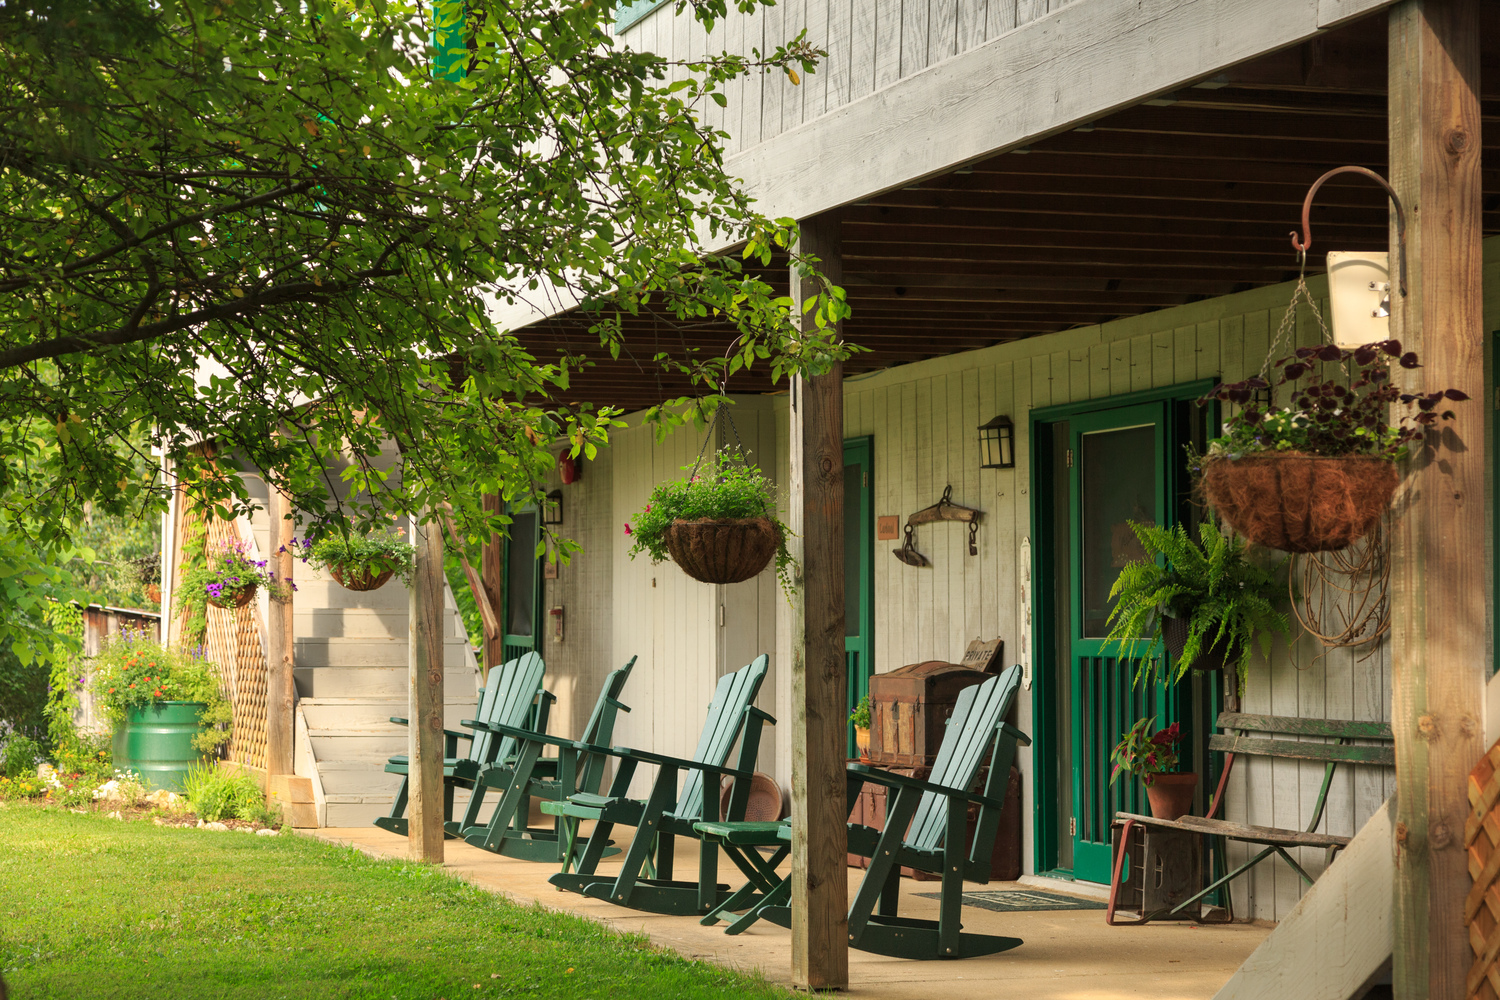 cedar-falls-rooms-main-inn-porch-3.jpg